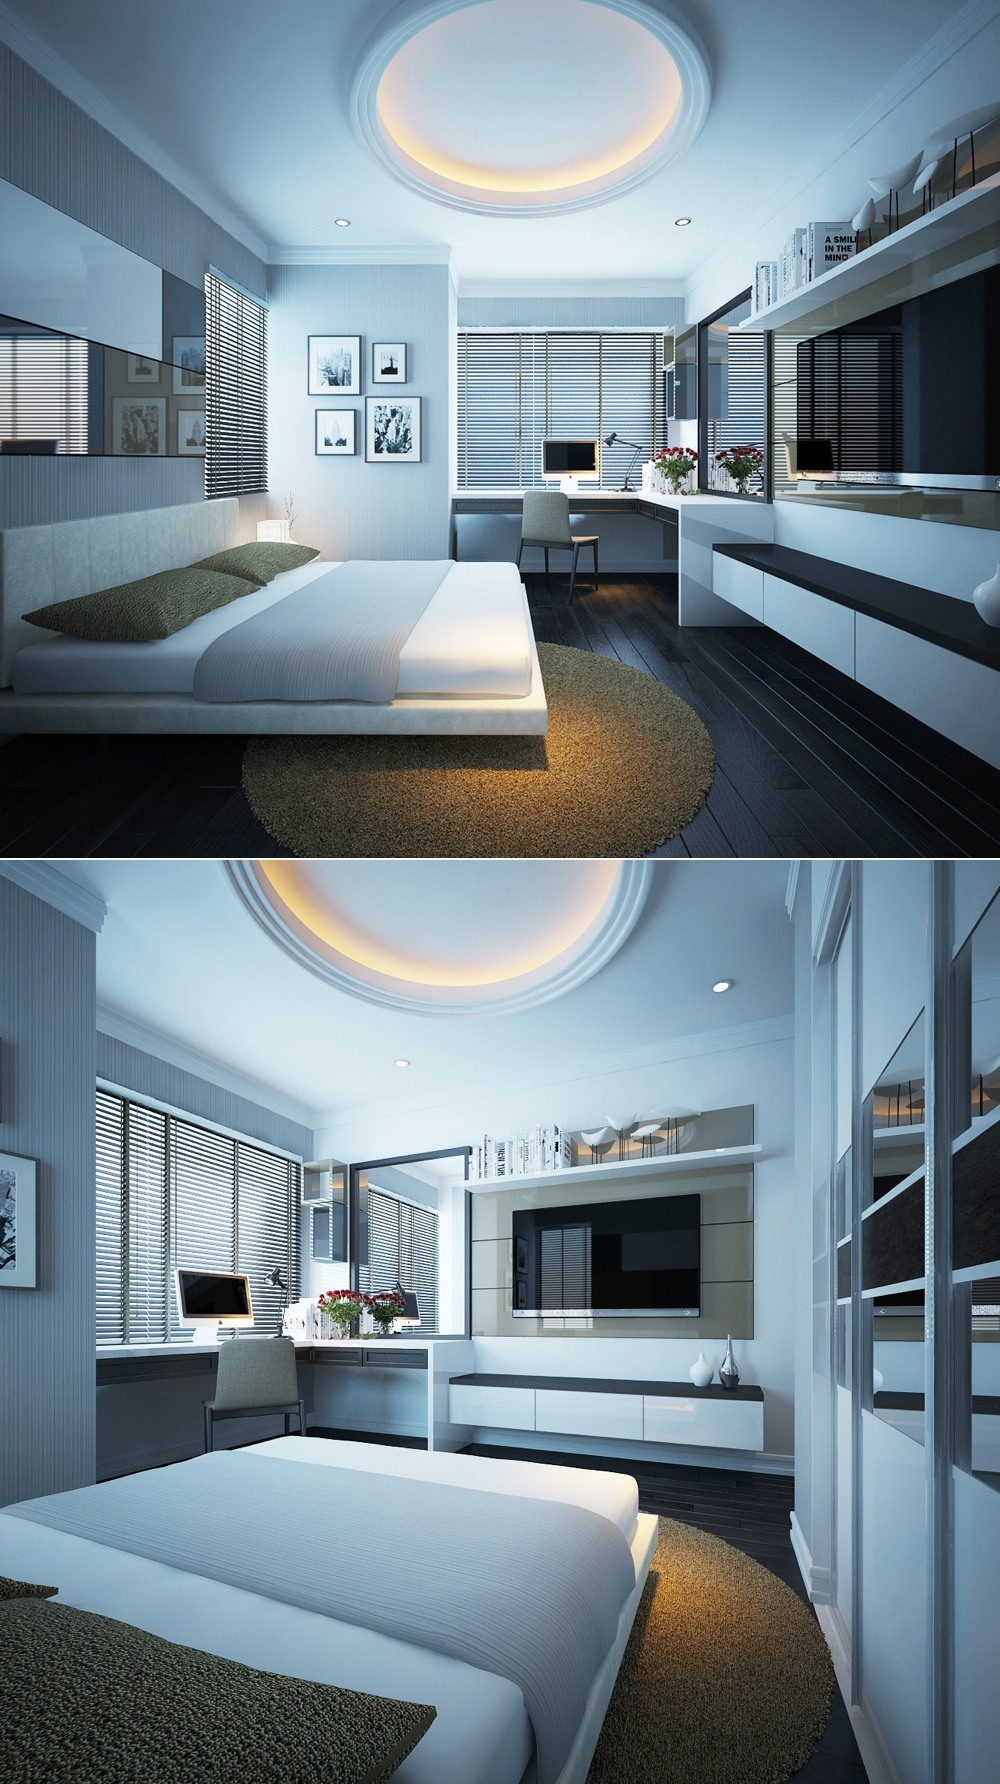 10 eye catching modern bedroom decoration ideas modern for New bedroom design ideas